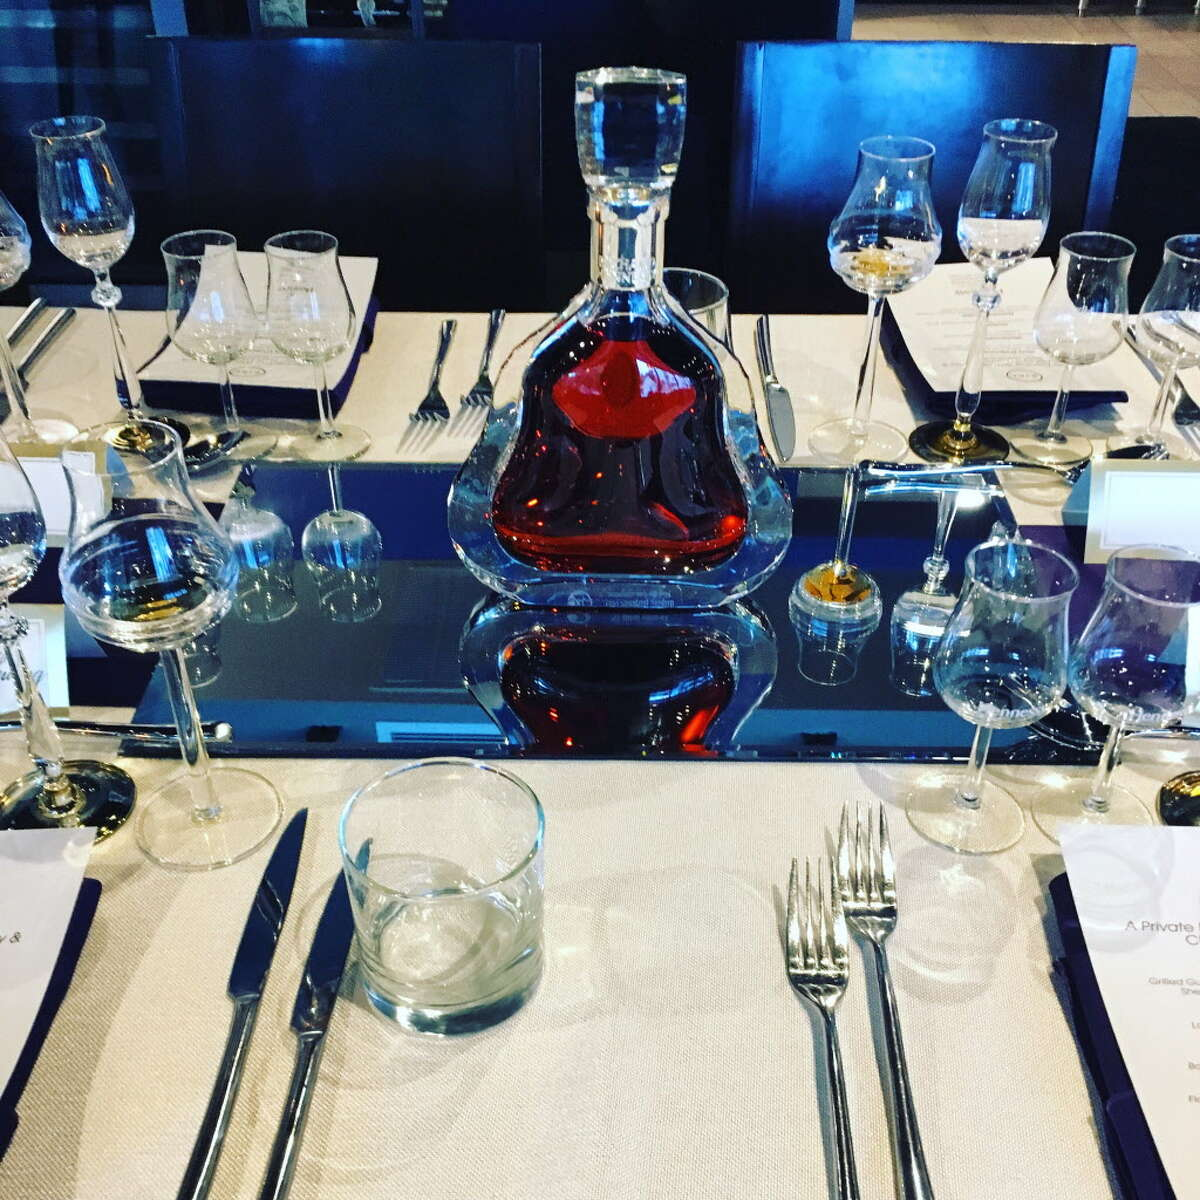 The table settings at Riel restaurant for the Hurricane Harvey benefit dinner in partnership with Hennessy.